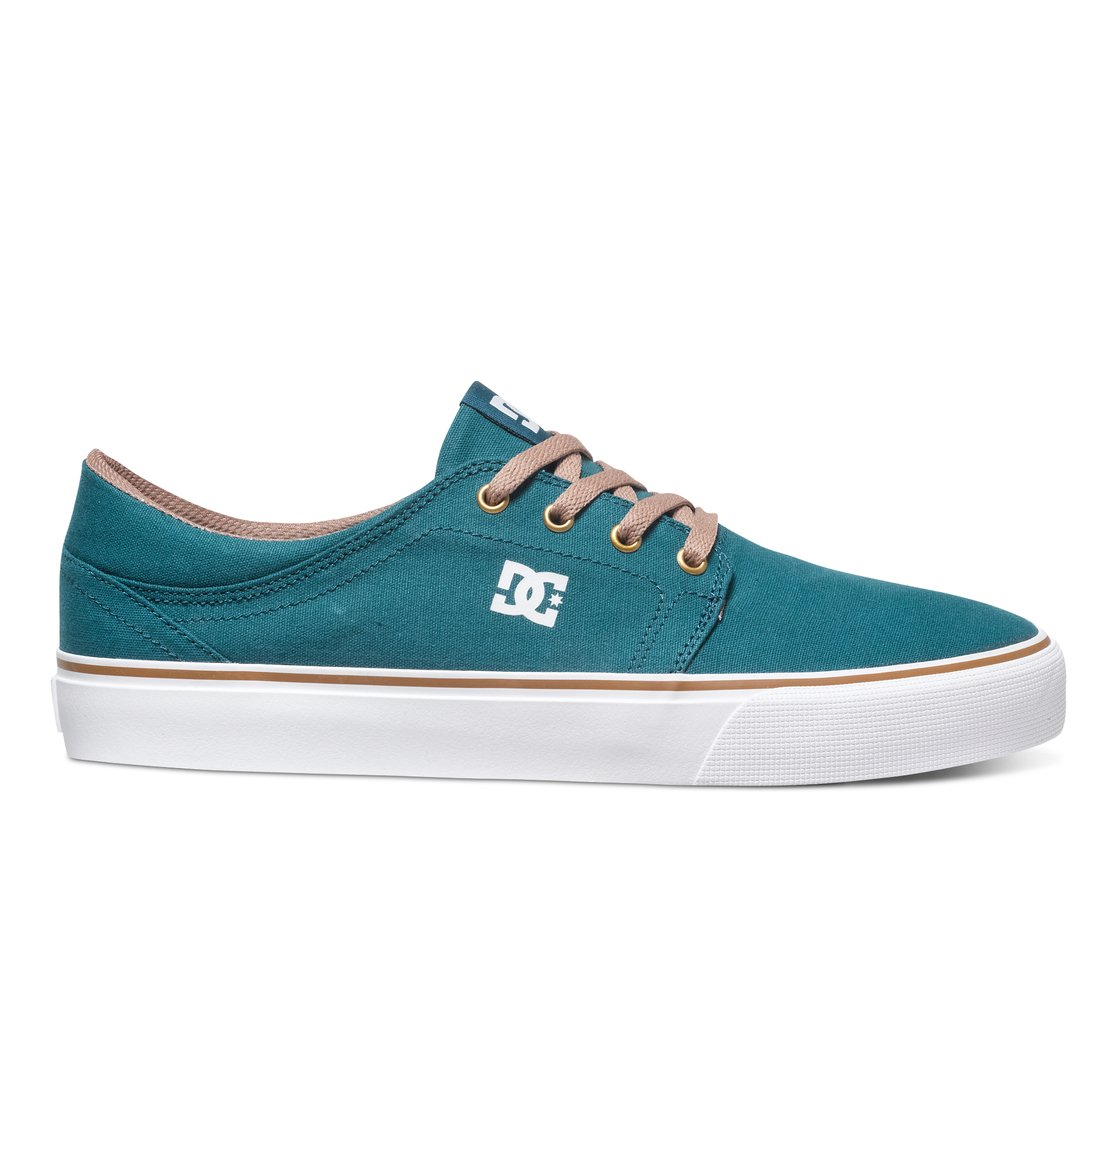 Trase TX - Dcshoes������ ������� ���� Trase TX �� DC Shoes. <br>��������������: ��������������� ������, ������� ��������������� ����, �������-������ DC �� �����, ������� ���������� ����� �� �������� ���� �������, ����������� ����, HD-�������, ��������� ��� �������� � ������������� ����������, ����������������� �����������, ������������� ���������� �������, ��������� ������� ���������� ������� DC Pill Pattern. <br>������: ����: �������� / ���������: �������� / �������: ������.<br>